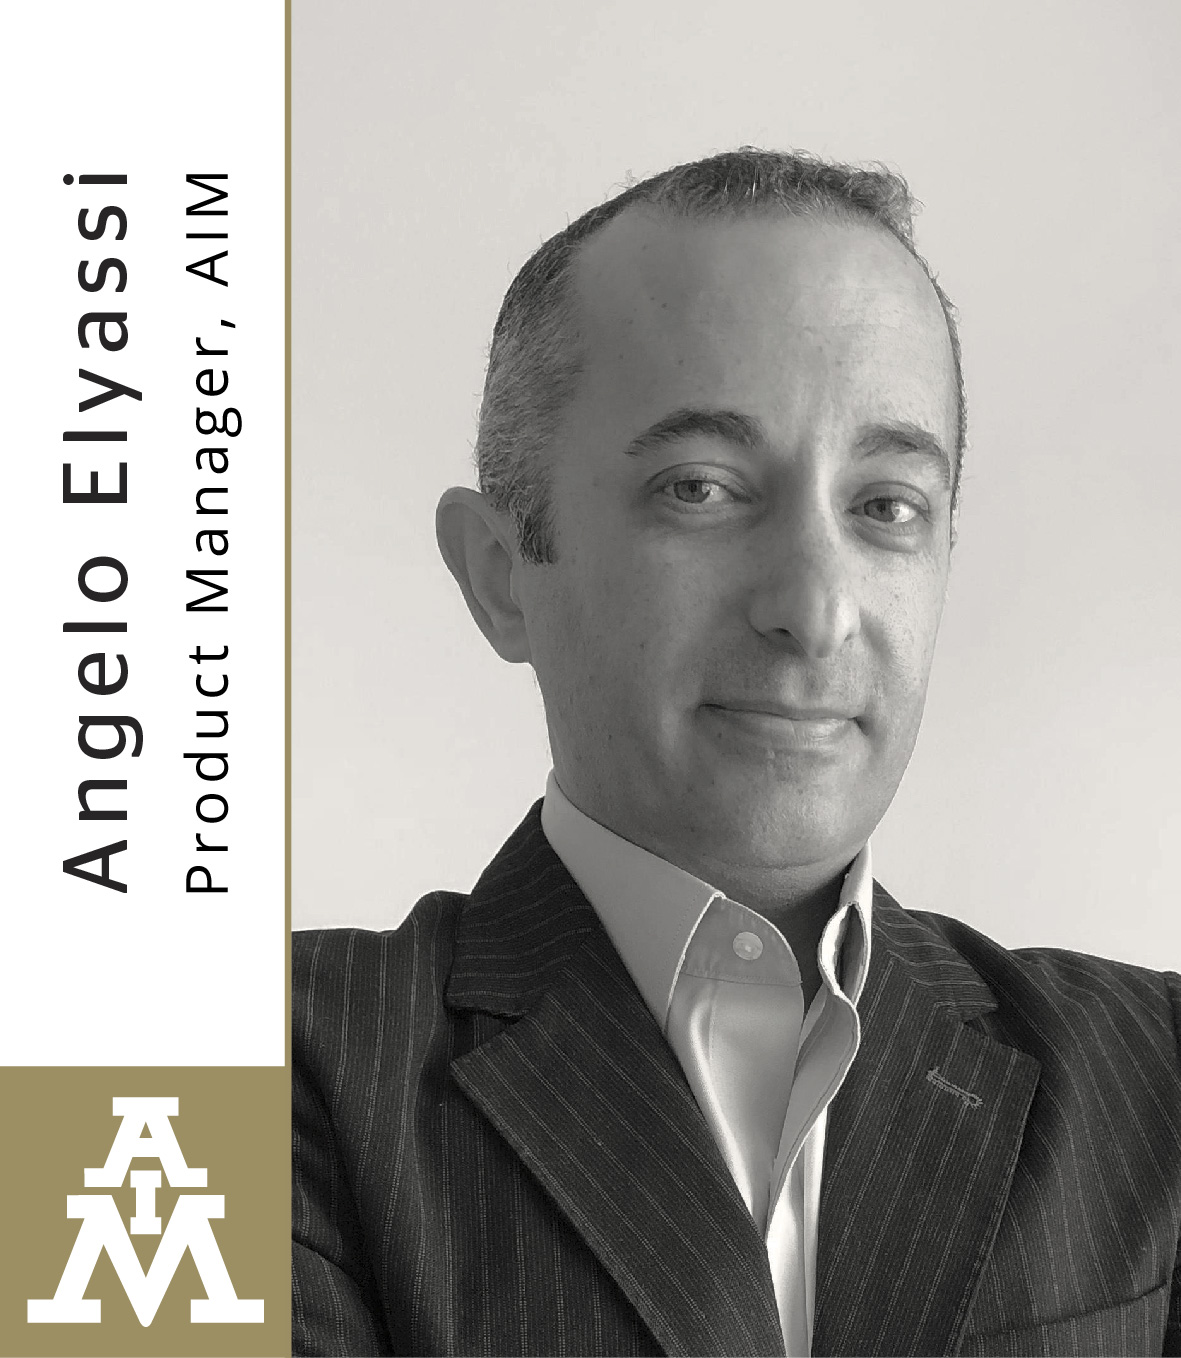 AIM Appoints Product Manager Angelo Elyassi